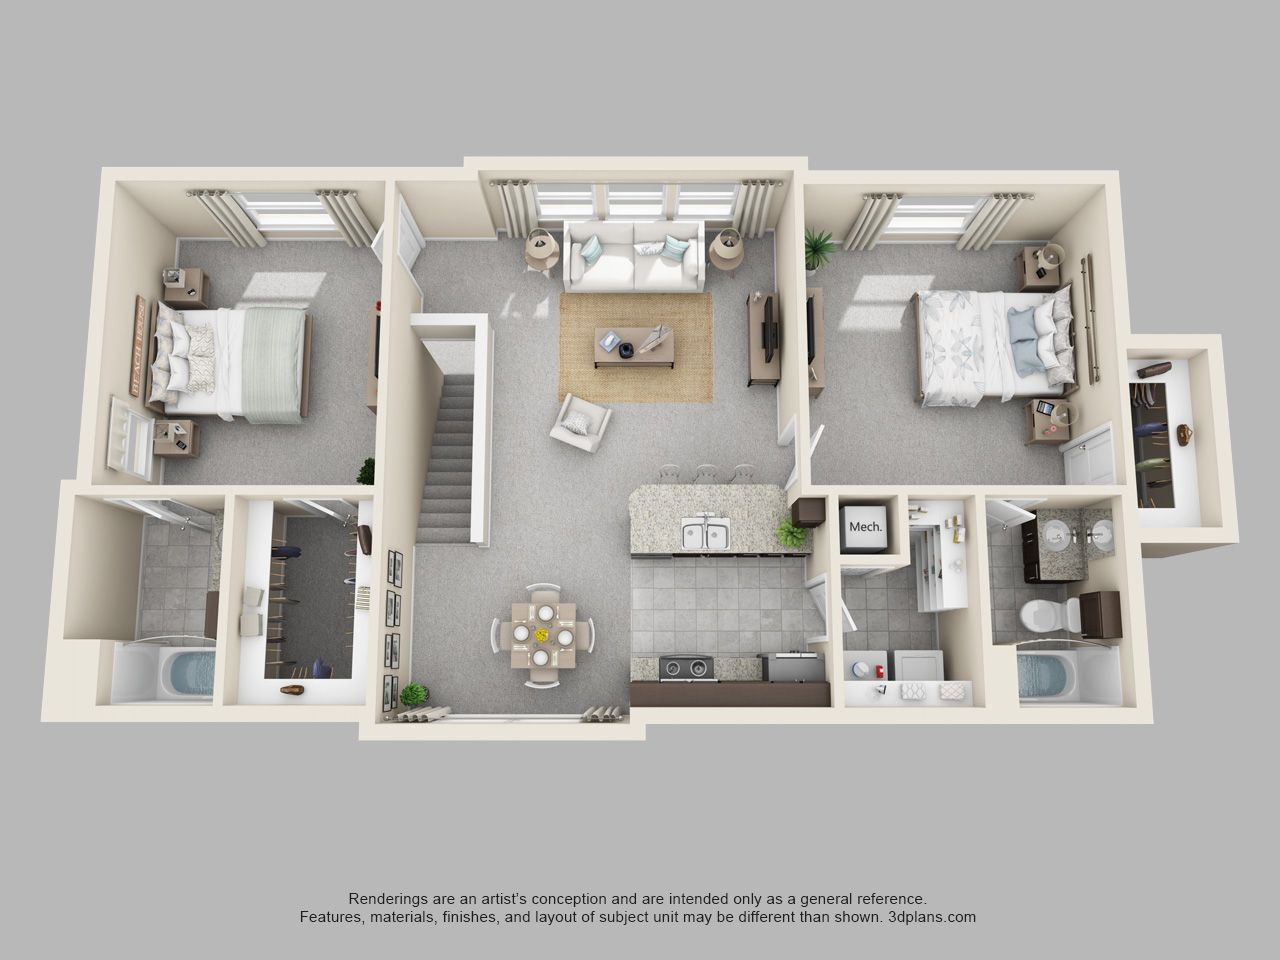 The Pointe at Cabot 2 Bedroom 2 Bath Maple loft floor plan The